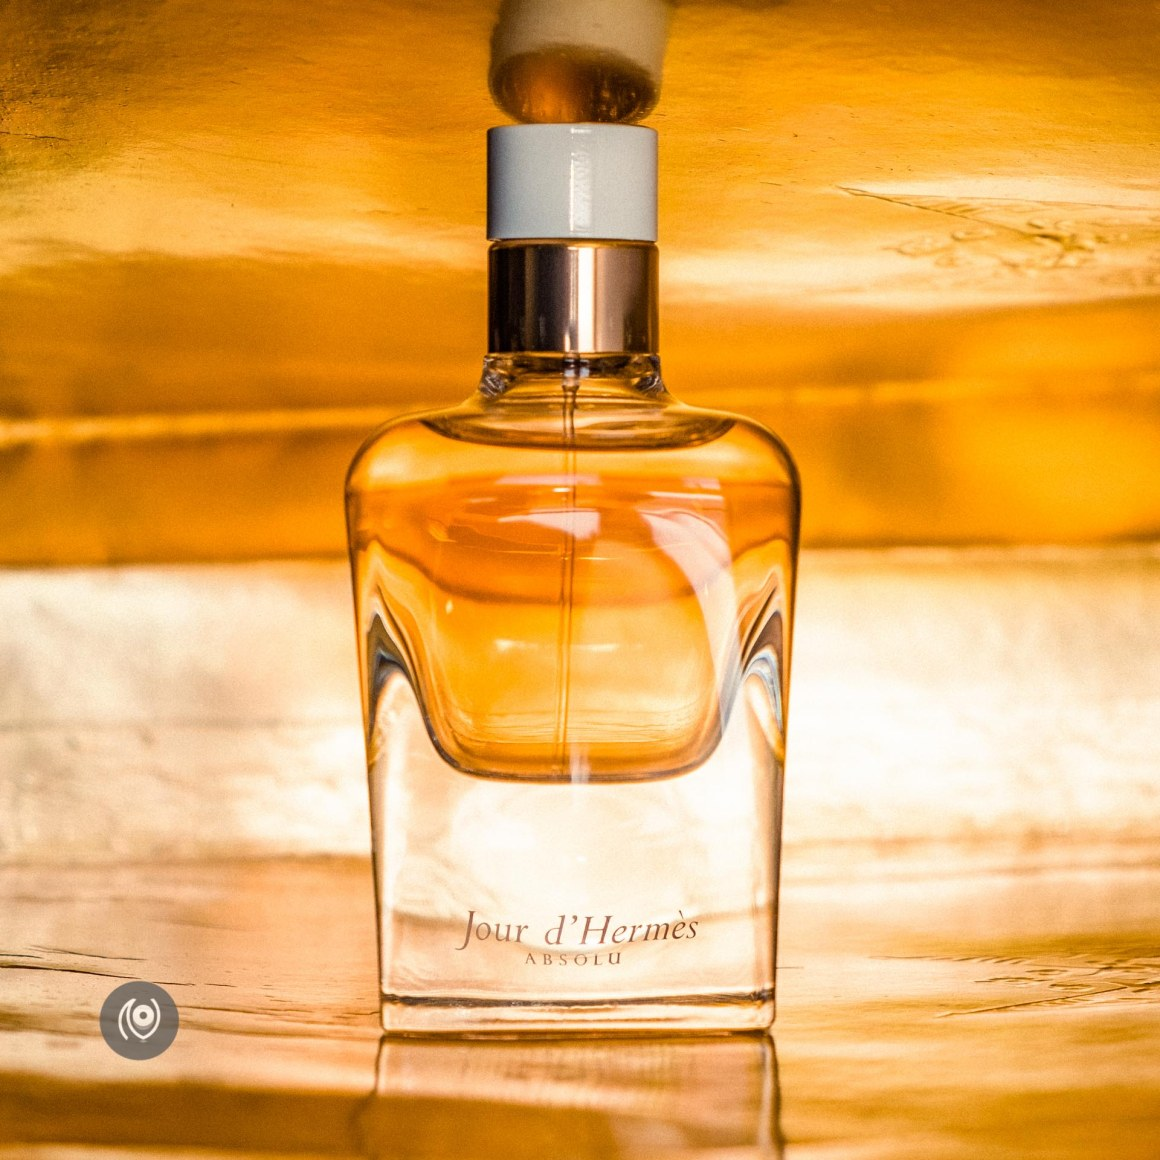 Jour d'Hermes Absolu Parfum #EyesForLuxury Naina.co Luxury & Lifestyle, Photographer, Storyteller, Blogger